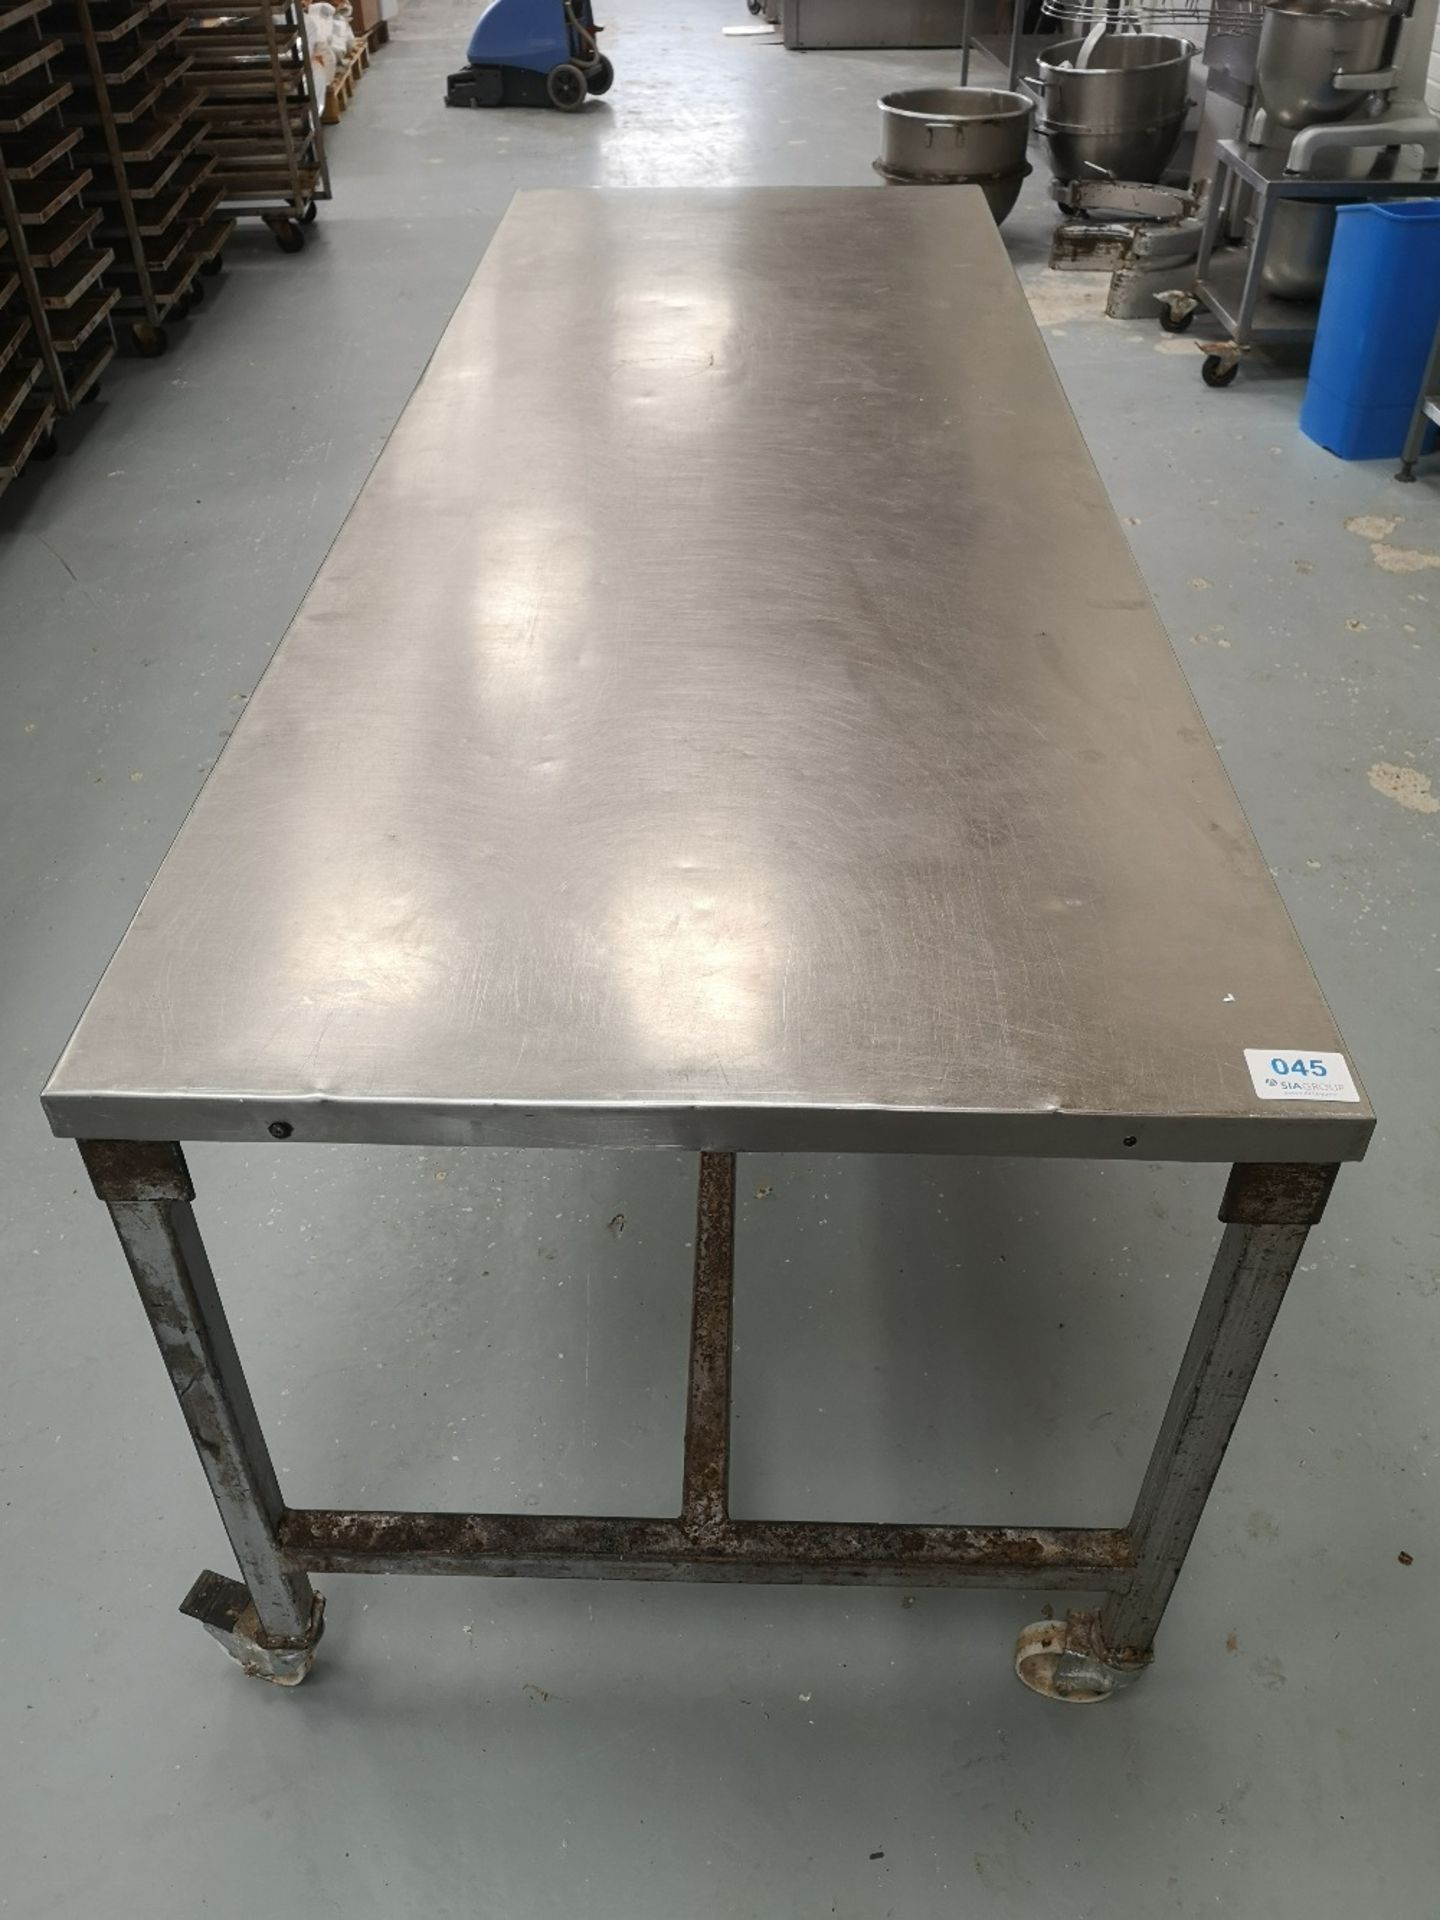 Stainless Steel Mobile Preparation Table - Image 2 of 2